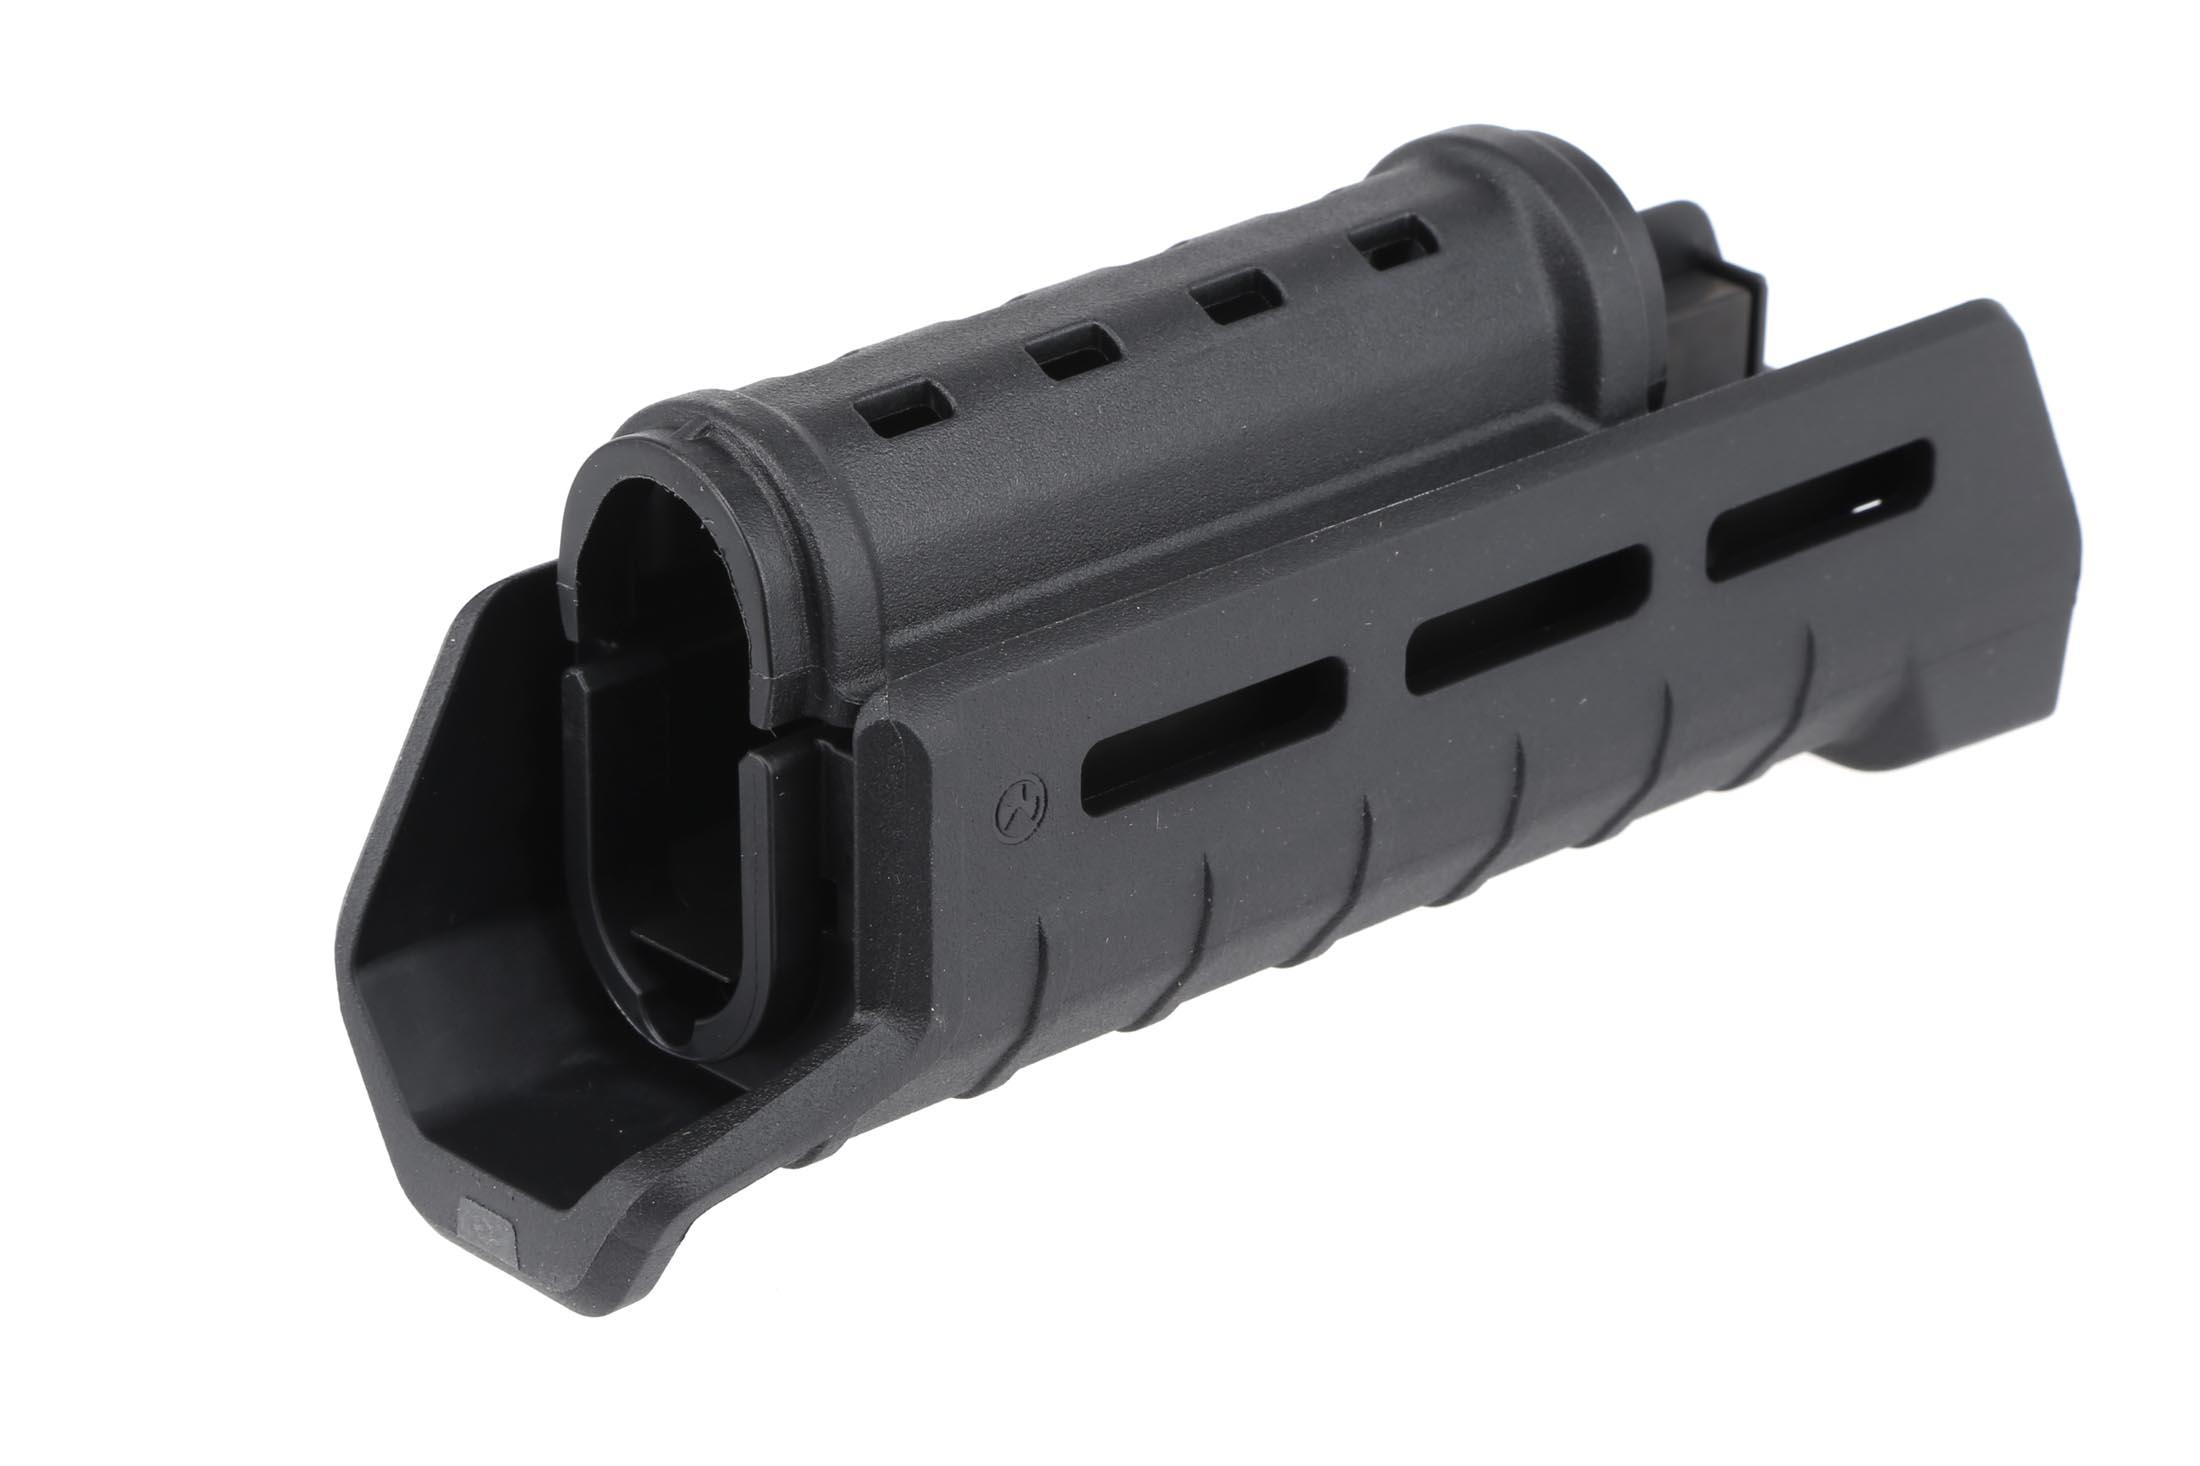 The Magpul MOE AKM M-LOK handguard is compatible with many AK47 and 74 rifle platforms